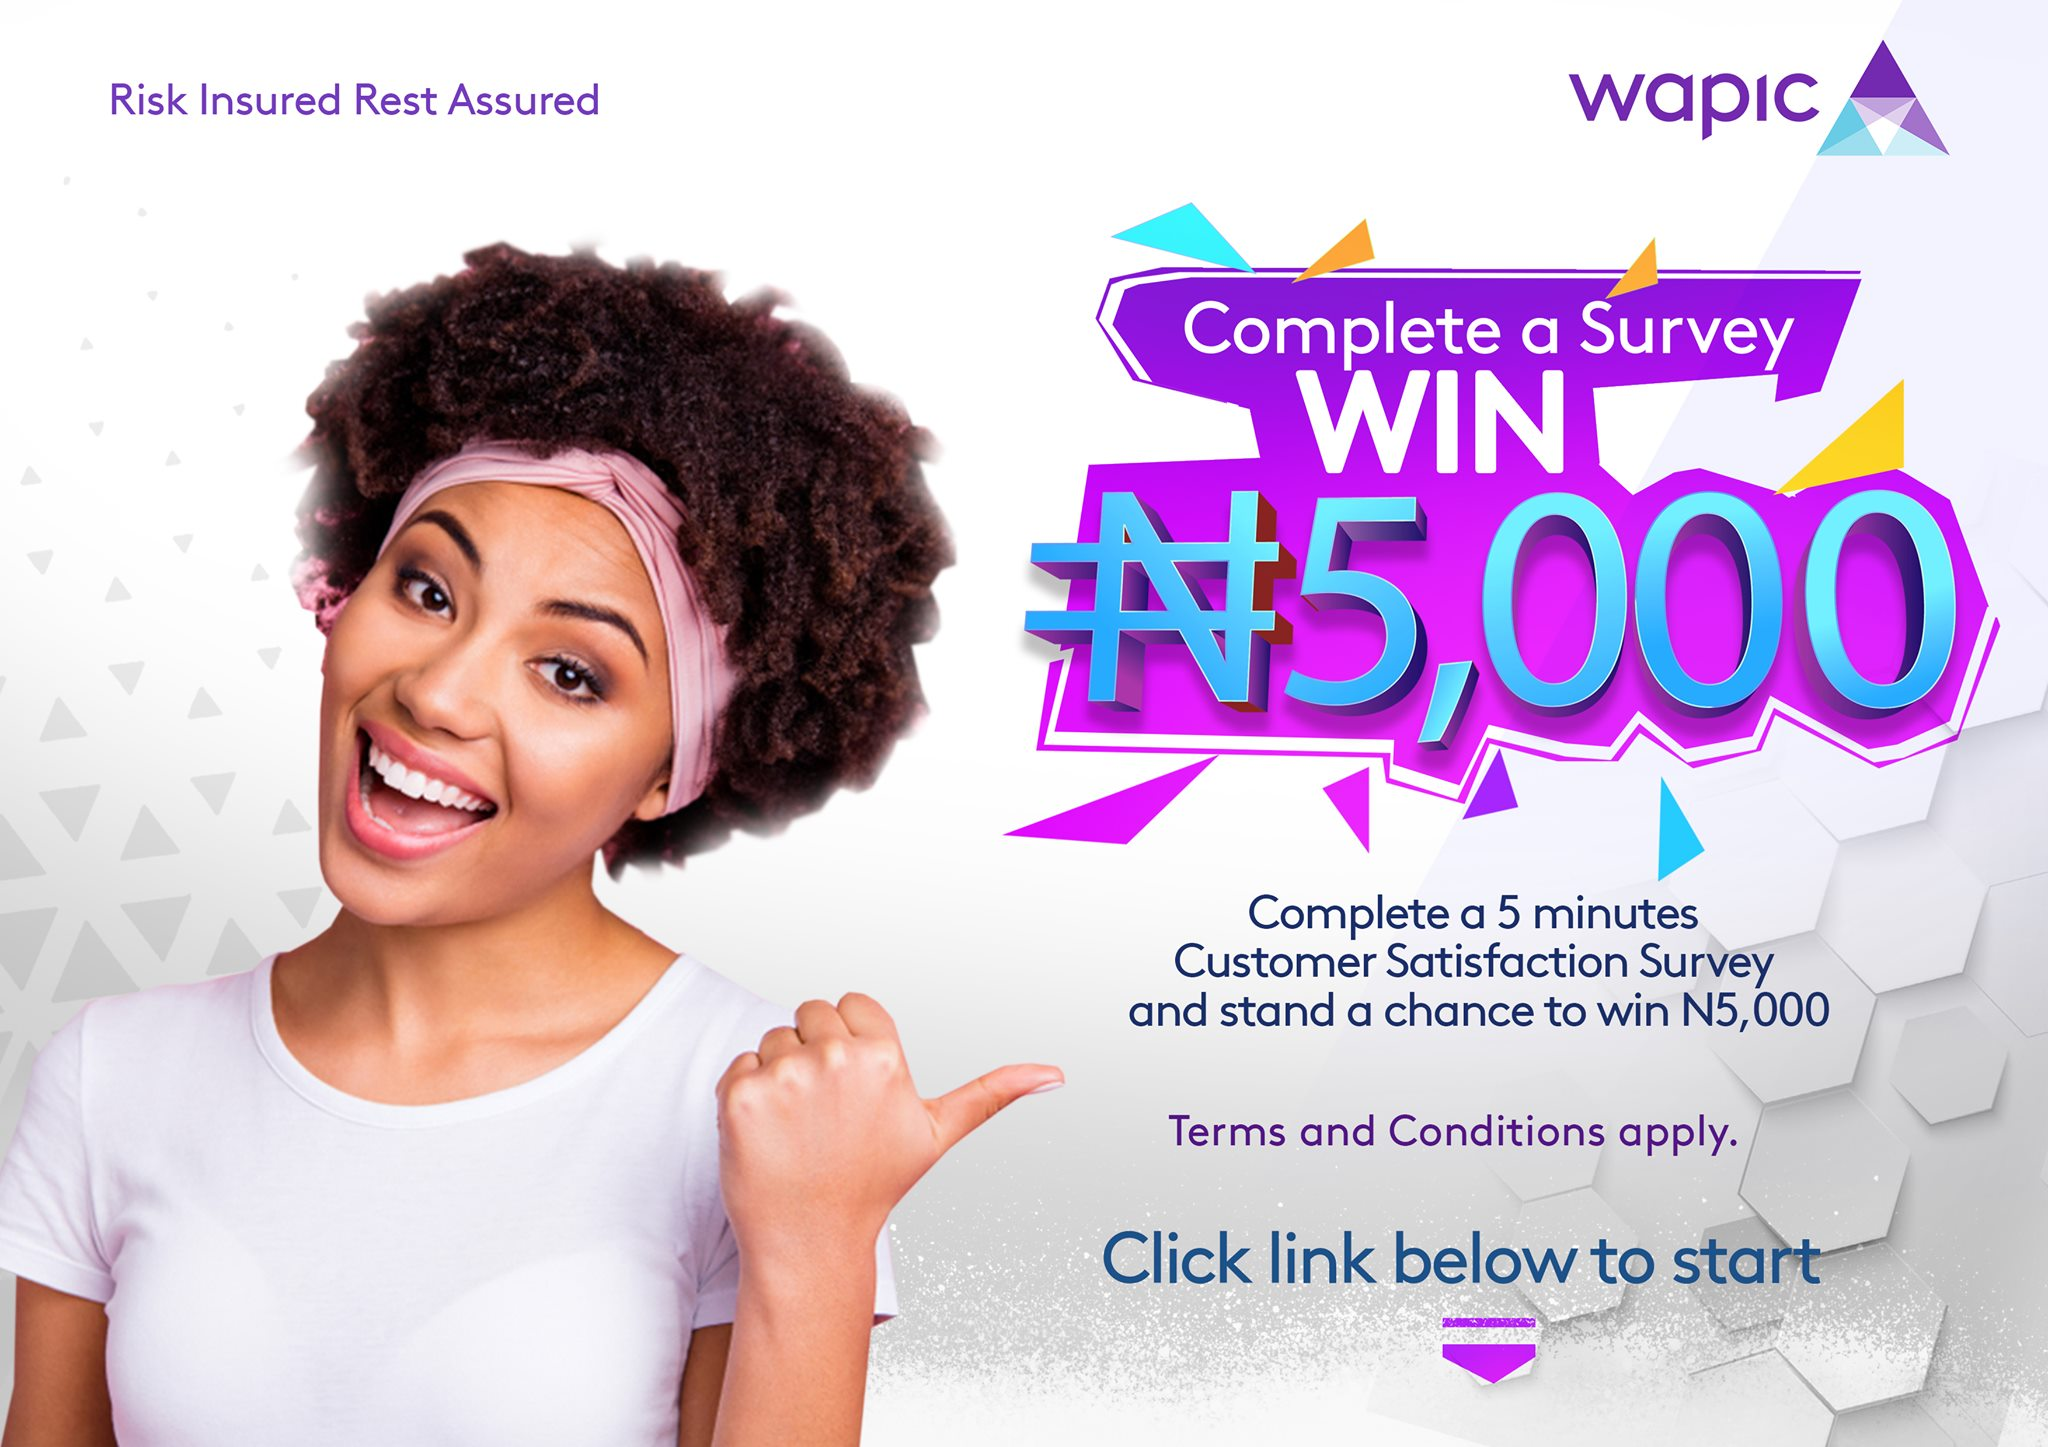 Participate in Wapic Insurance Survey and Win N5,000 Giveaway.